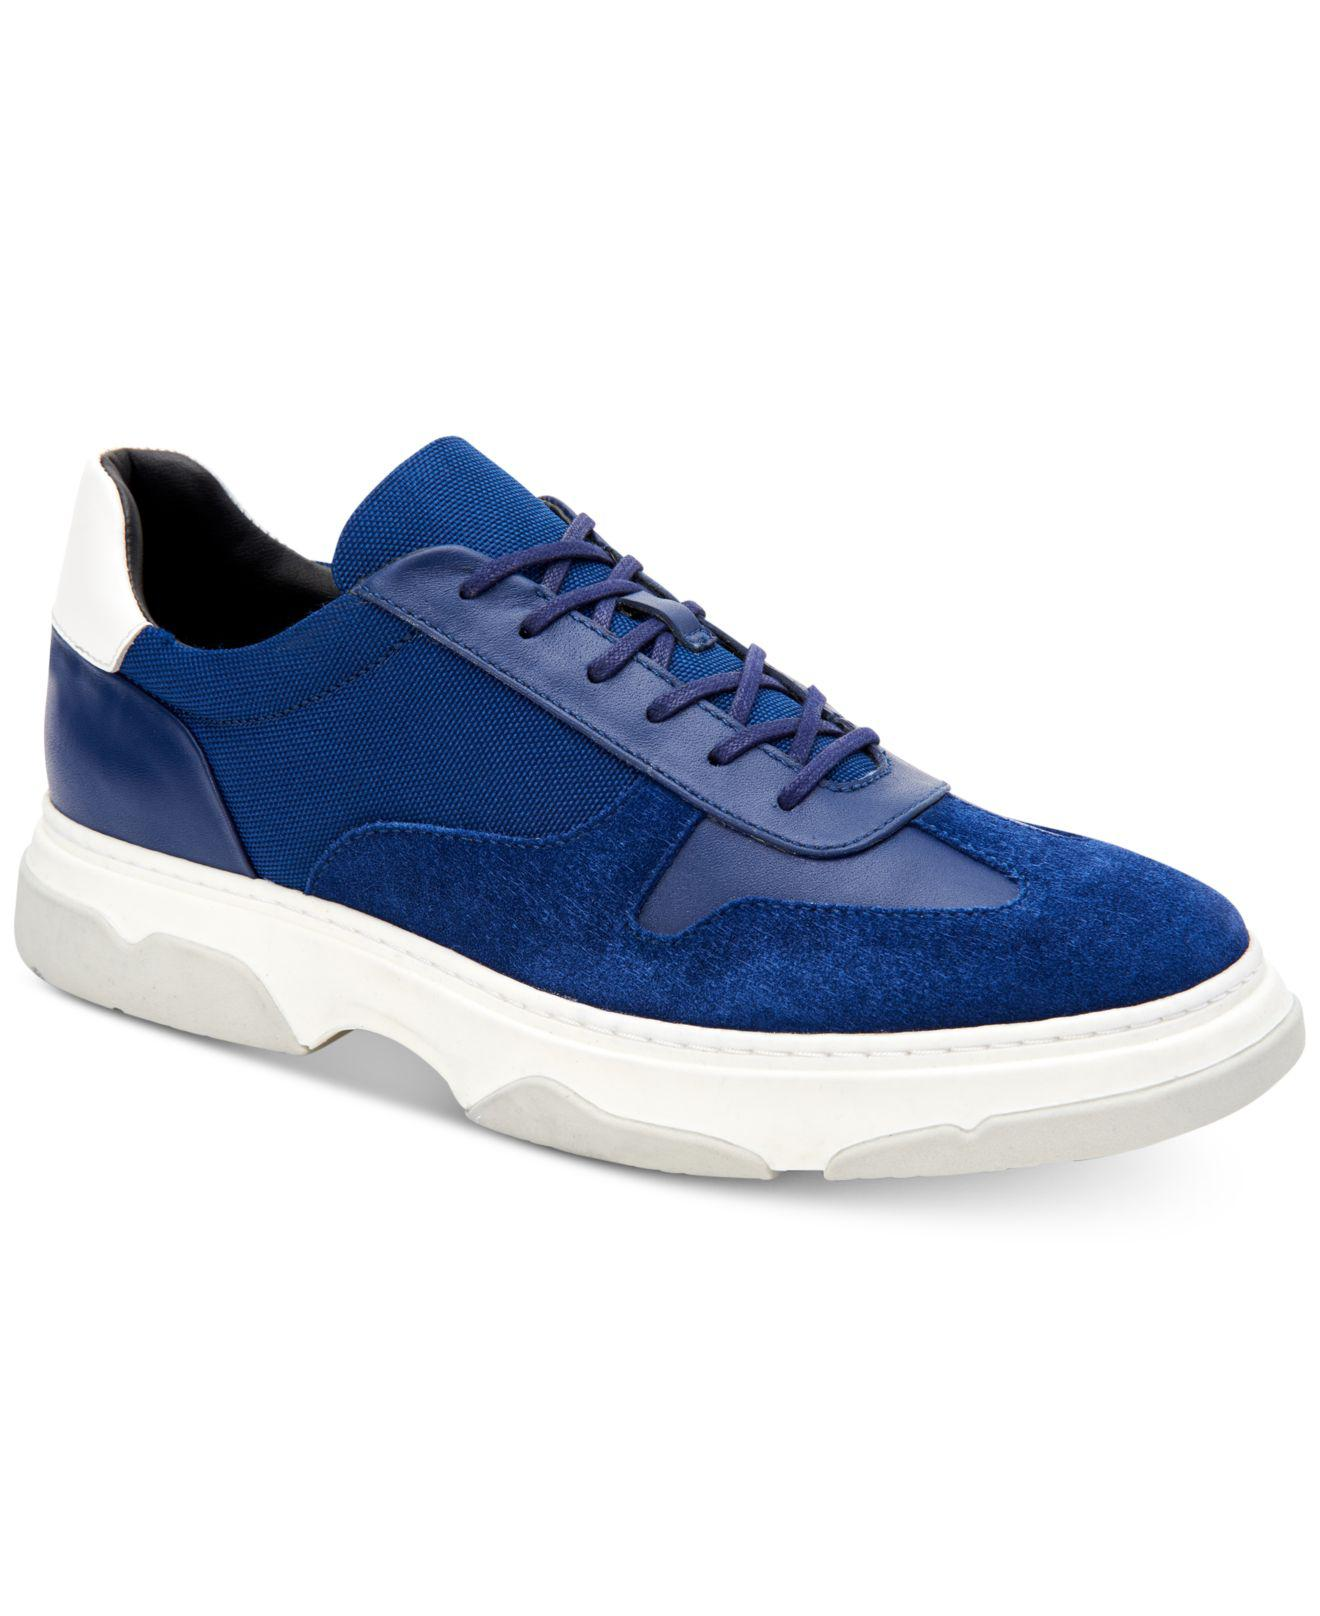 f06a83c4f37 Lyst - Calvin Klein Pauly Sneakers in Blue for Men